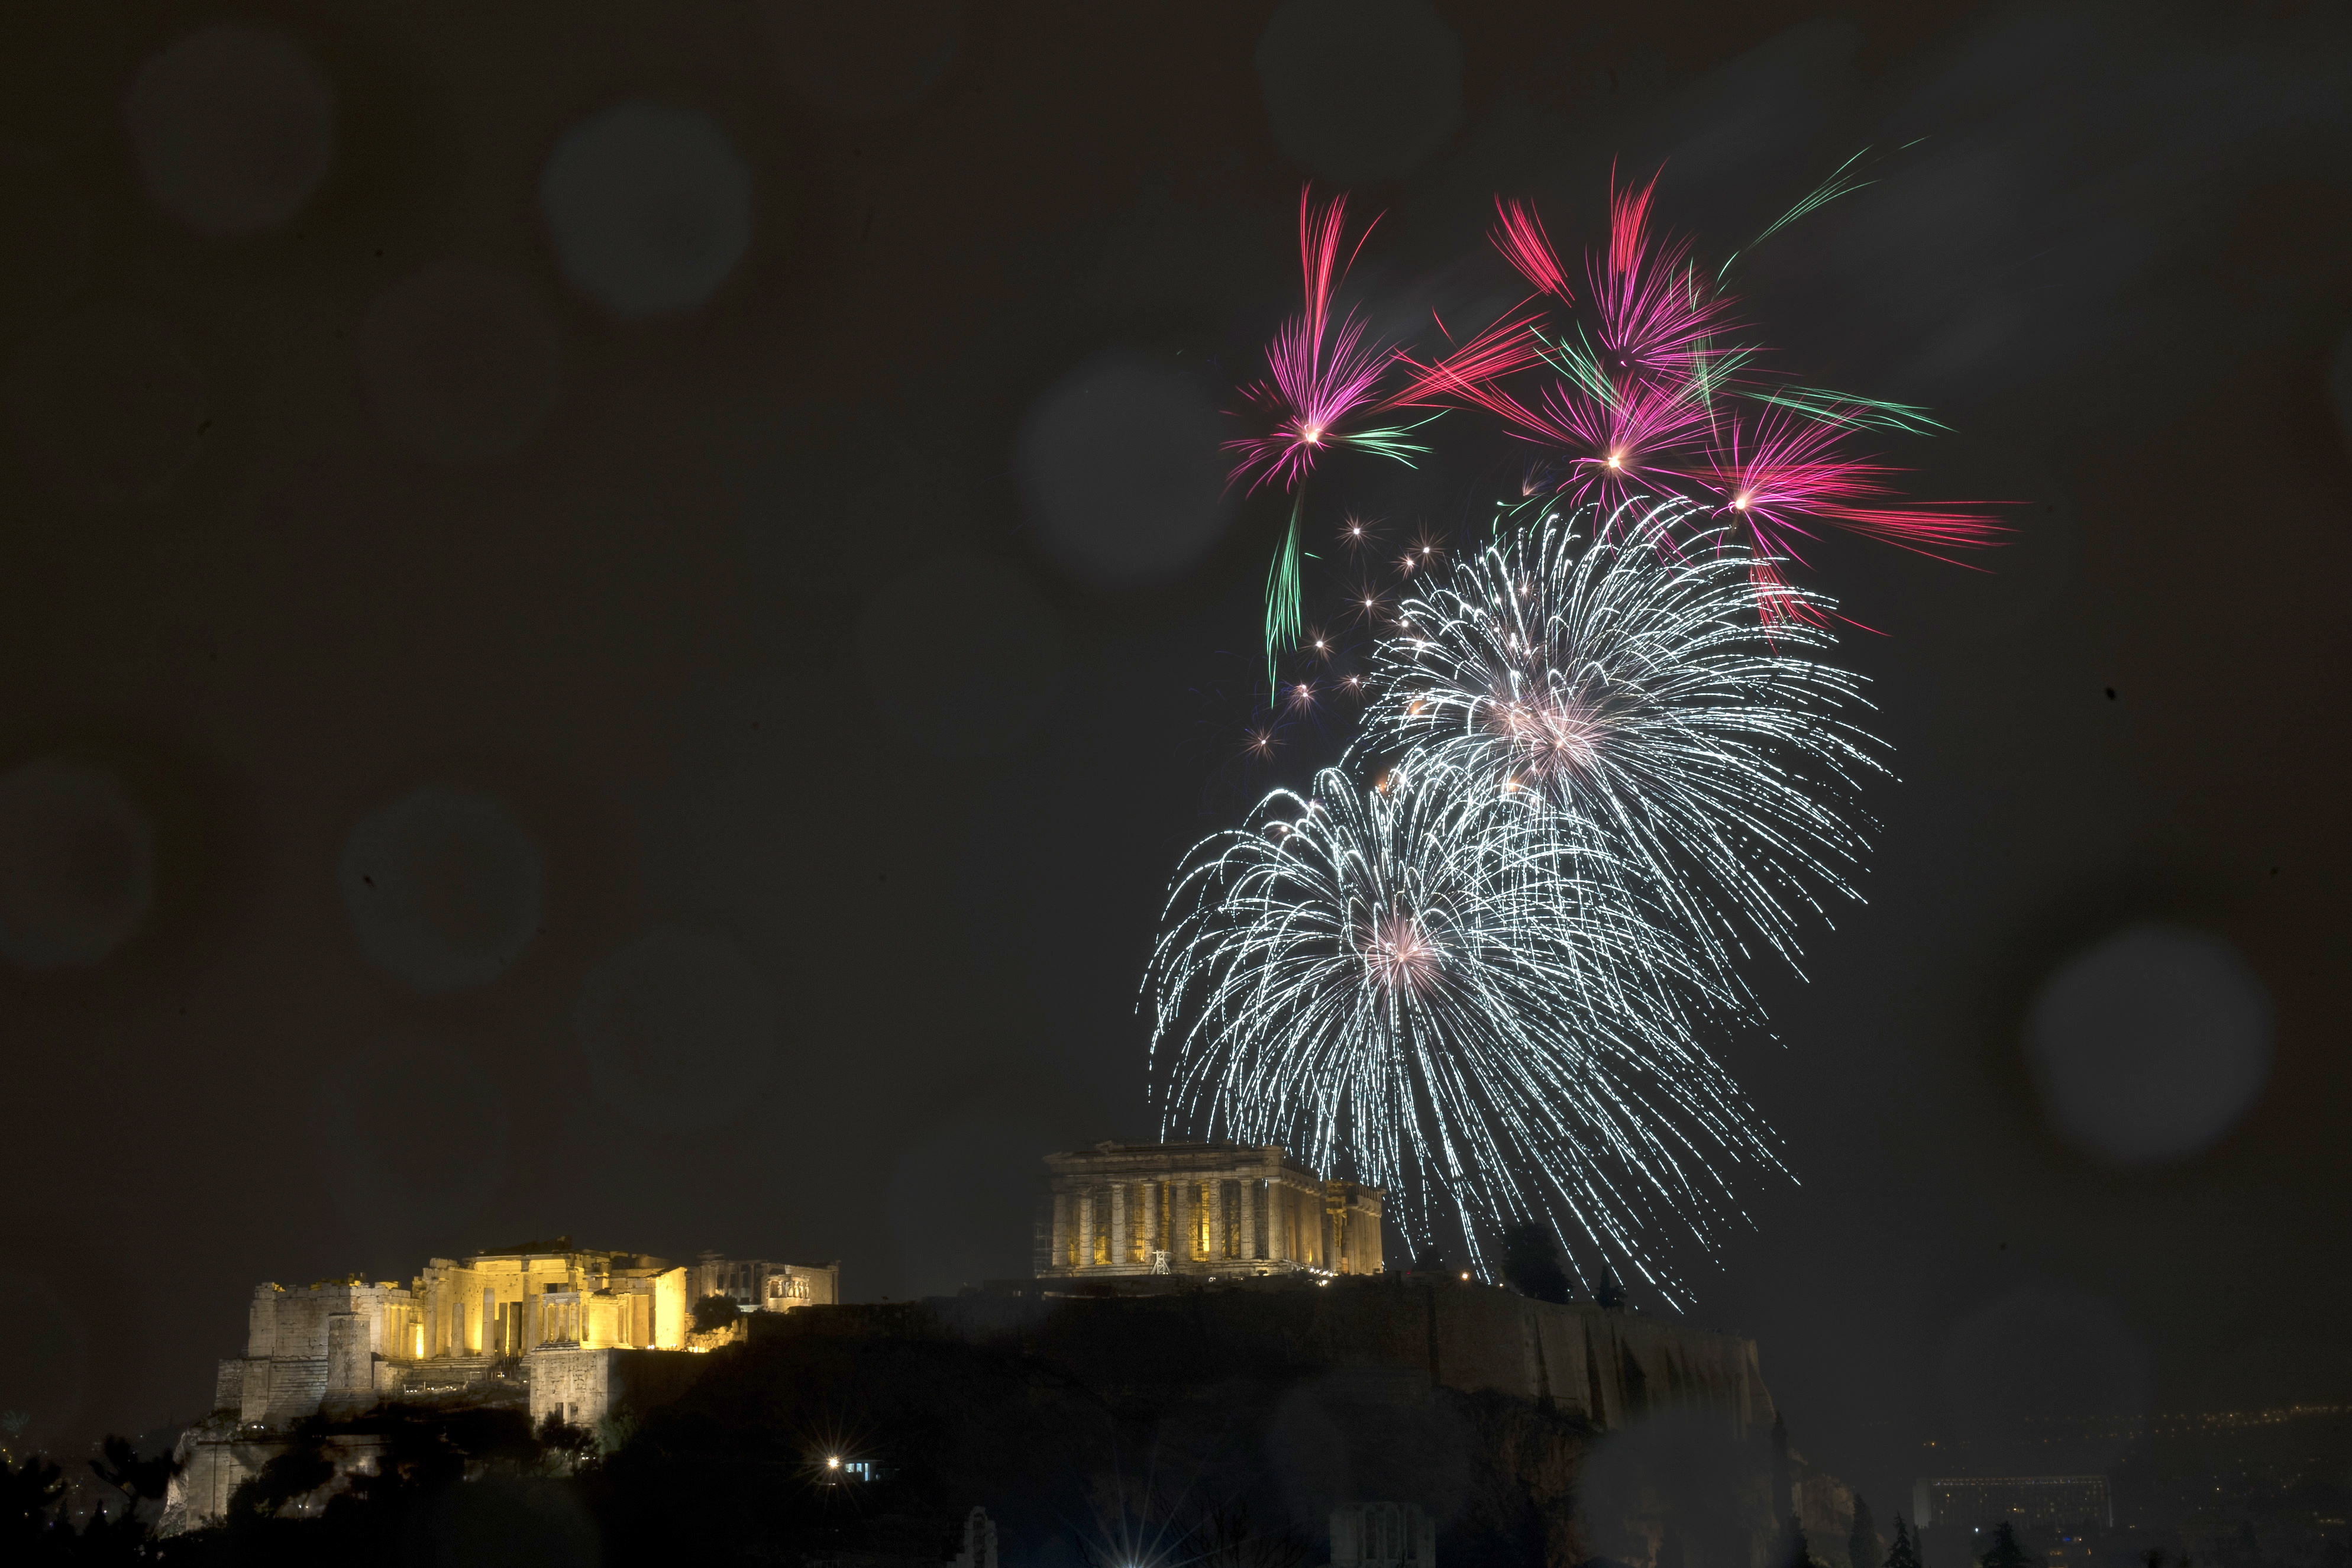 Fireworks explode over the ancient Parthenon temple at the Acropolis hill for the the New Year's Eve celebrations during a rainfall in Athens